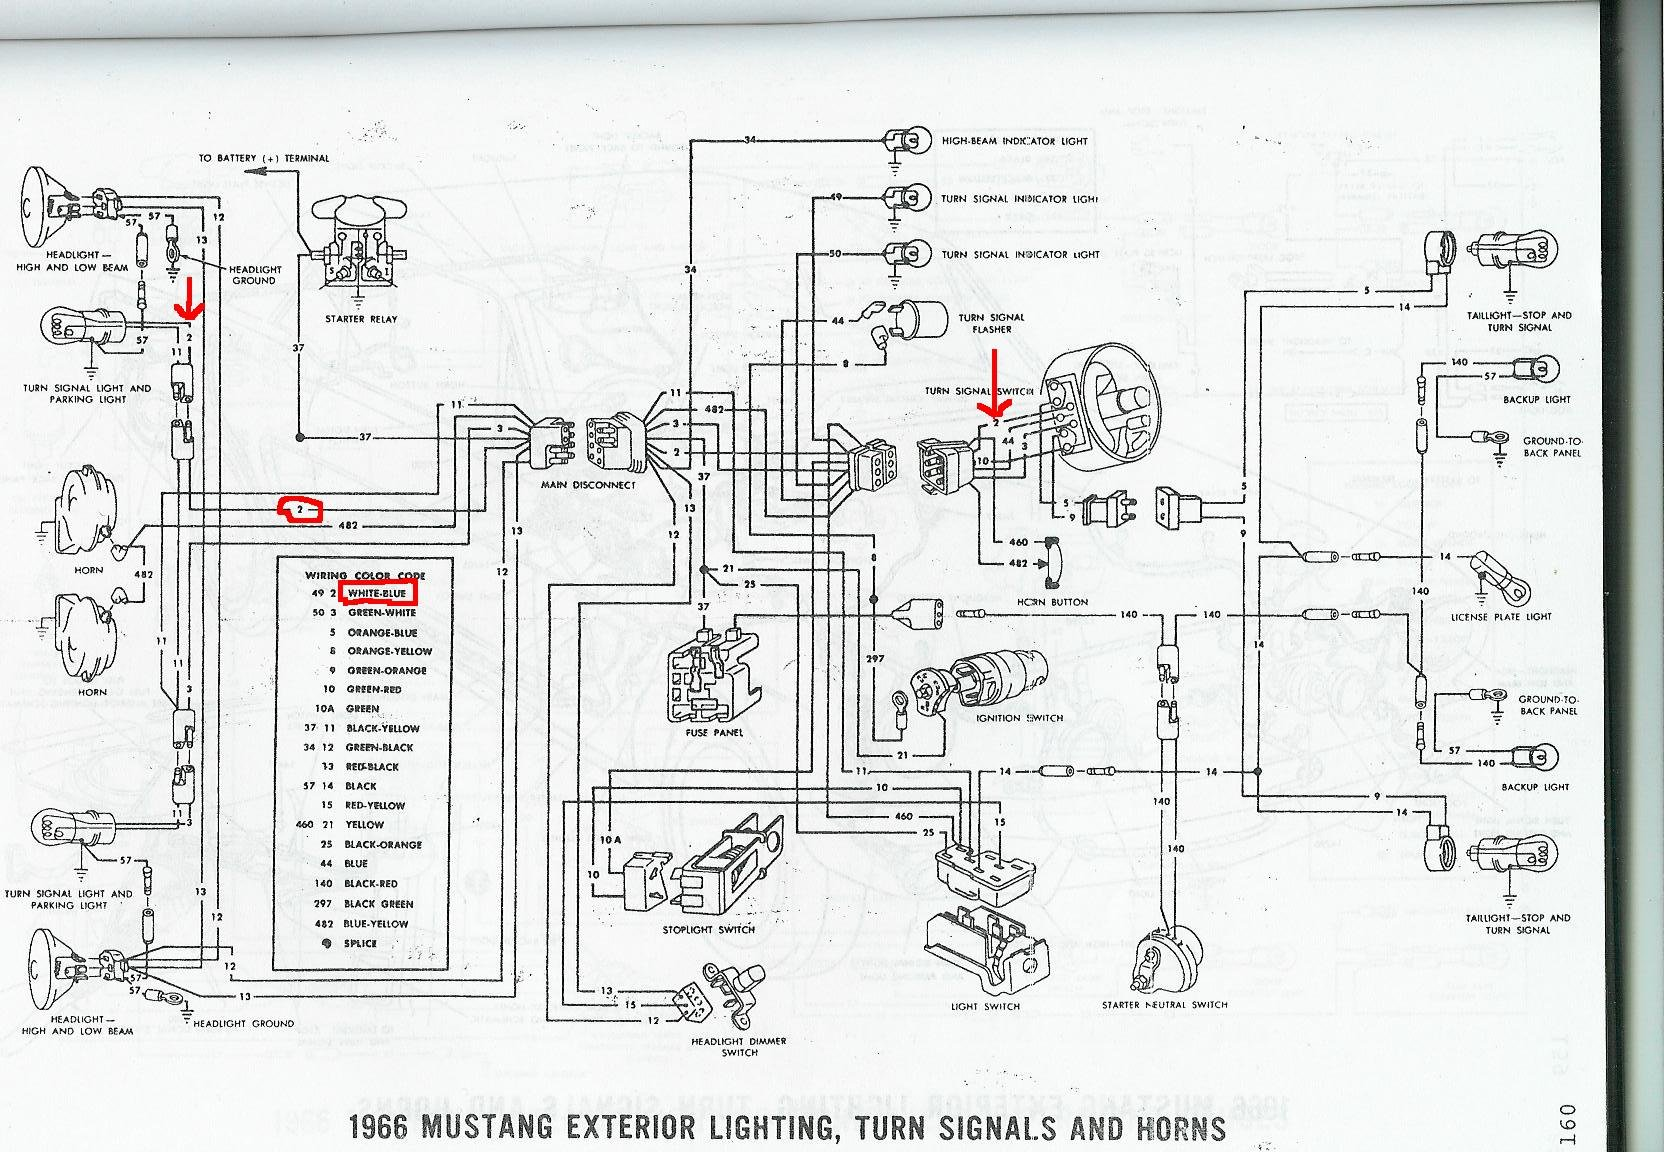 1970 F100 Wiring Diagram Wire Harness 1966 Circuit And Hub Mustang Park Lights Please Tell Me How They Are 1968 1971